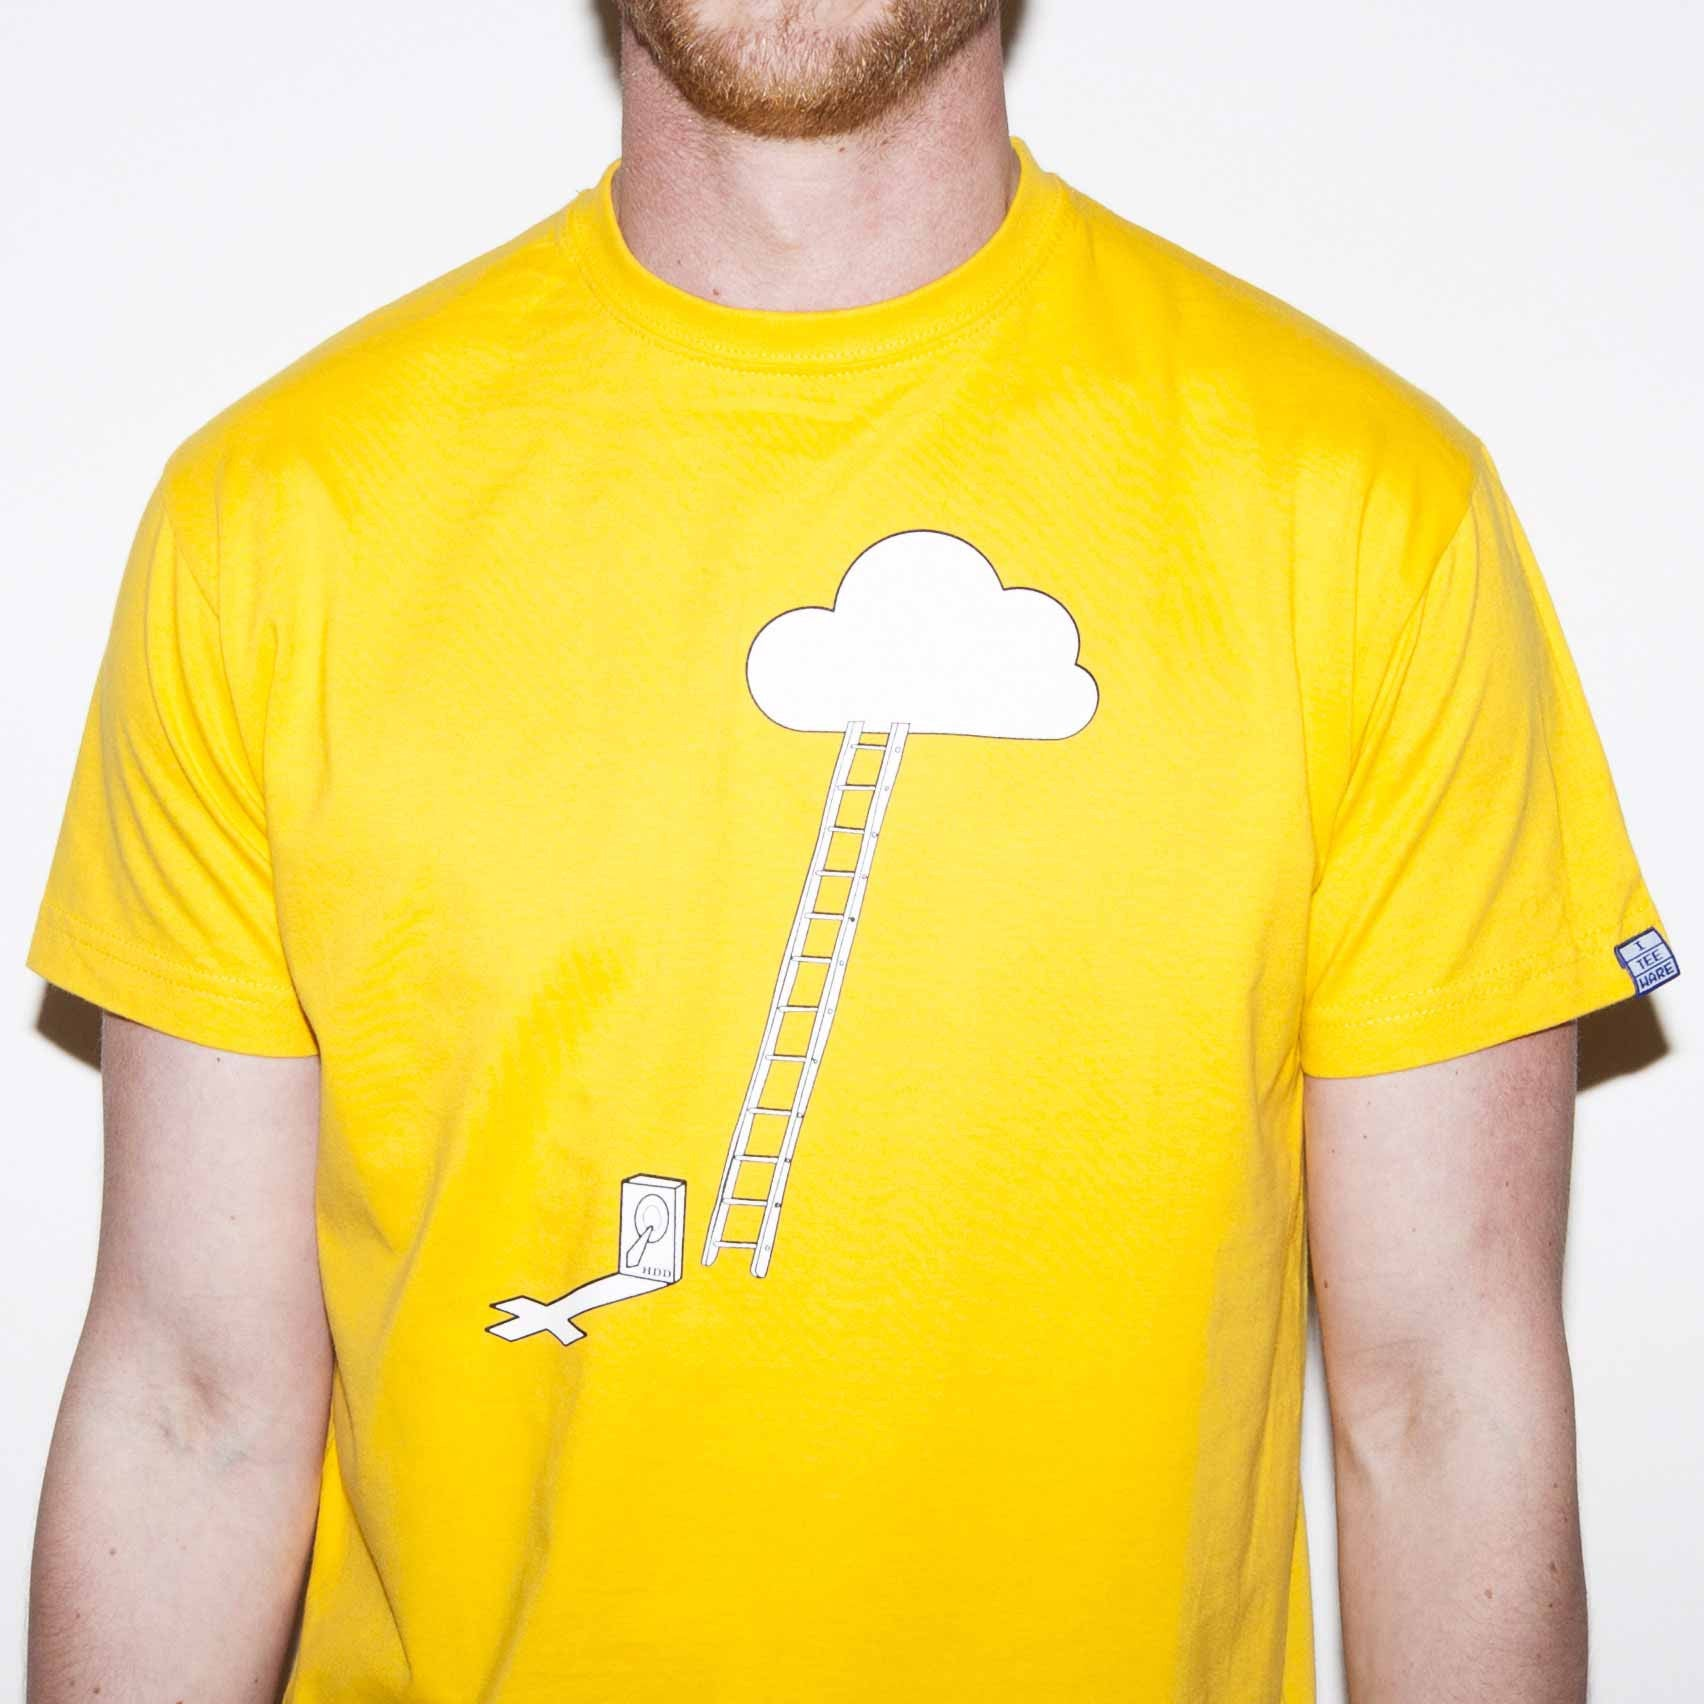 ... Yellow T Shirt With A Funny Computer Nerd Cloud Storage Geek Joke  Screen Printed In ...